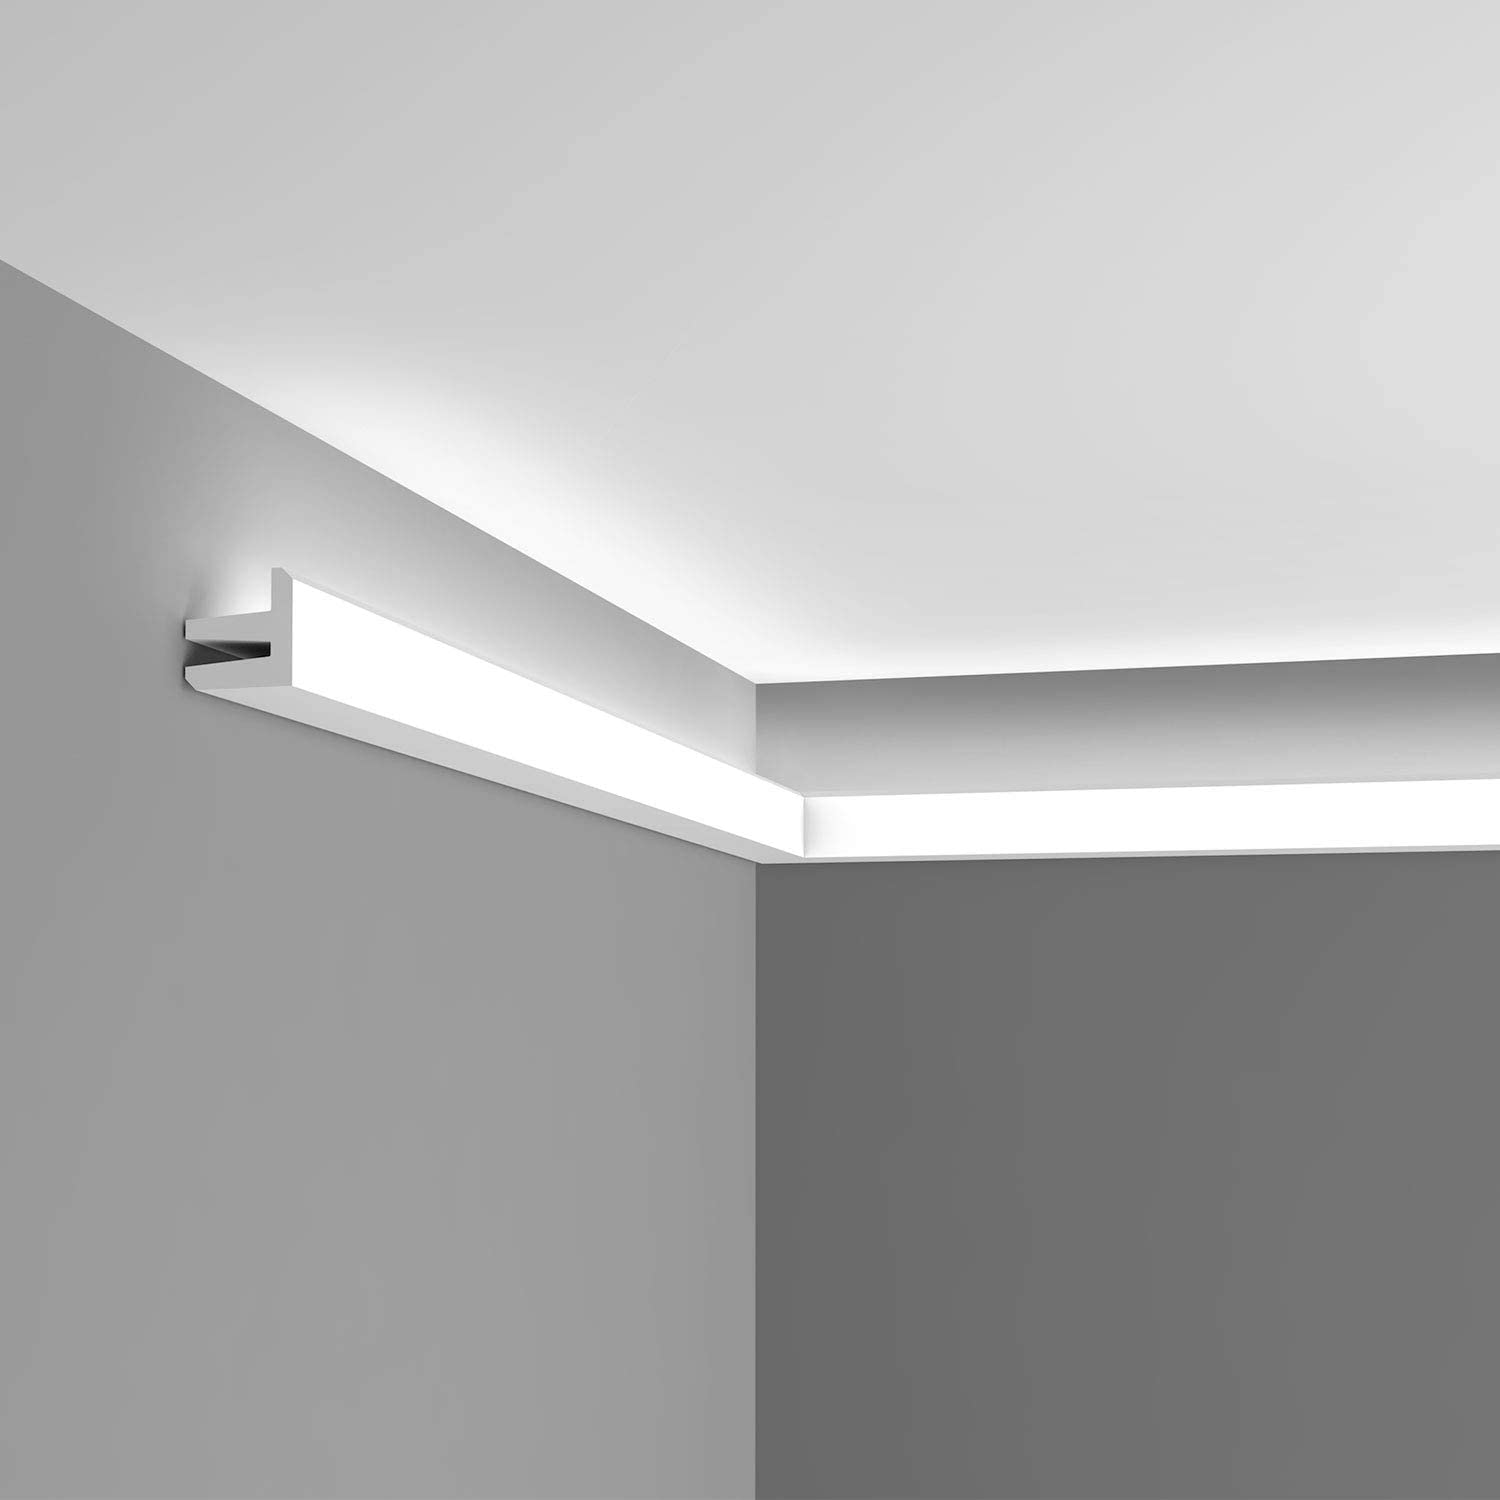 Orac Decor C380 | High Density Polyurethane Crown Moulding | Primed White | 2-1/2in Face x 78in Long | for Indirect Lighting and Hiding Wires Cornice Molding